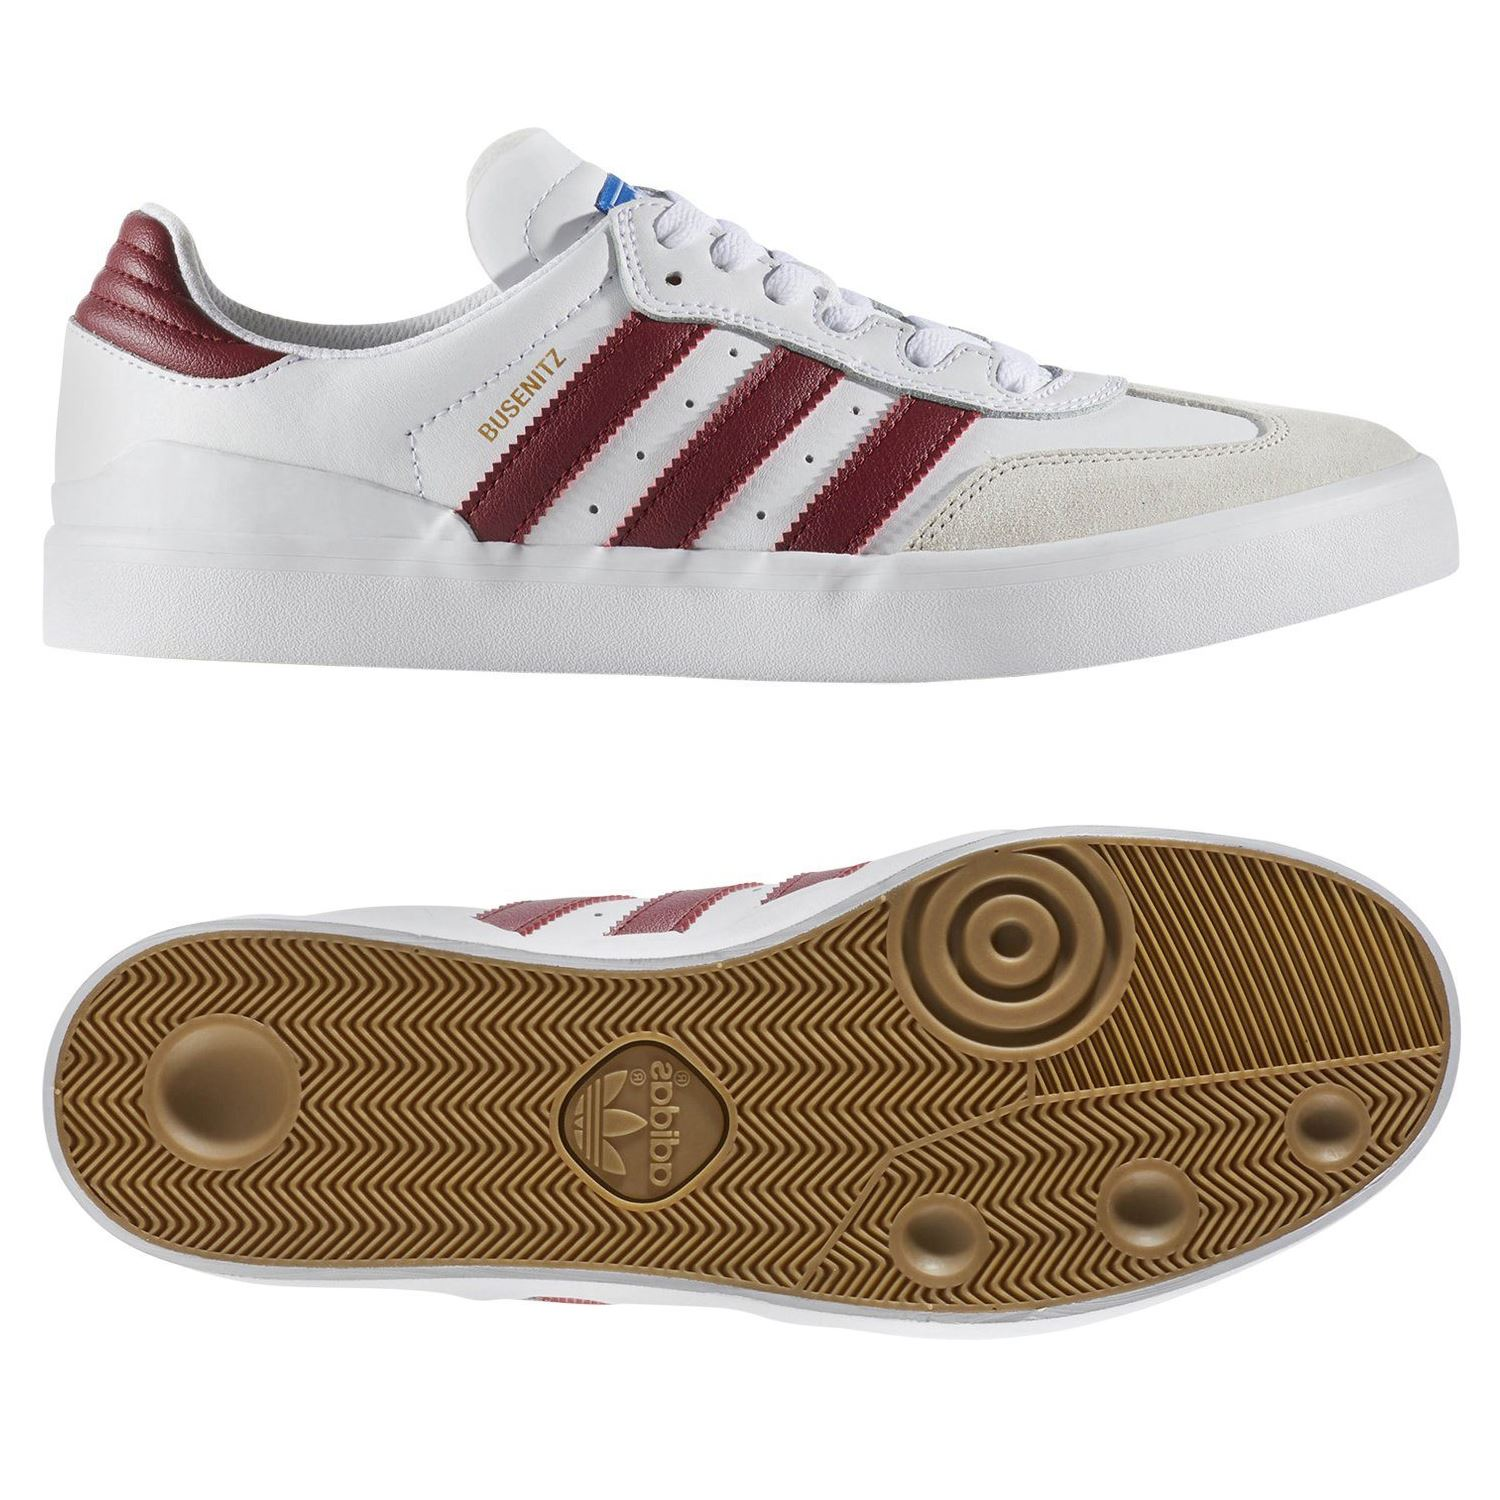 best loved 02bce a6106 Details about adidas Originals MENS BUSENITZ RX TRAINERS WHITE  SKATEBOARDING SHOES SNEAKERS